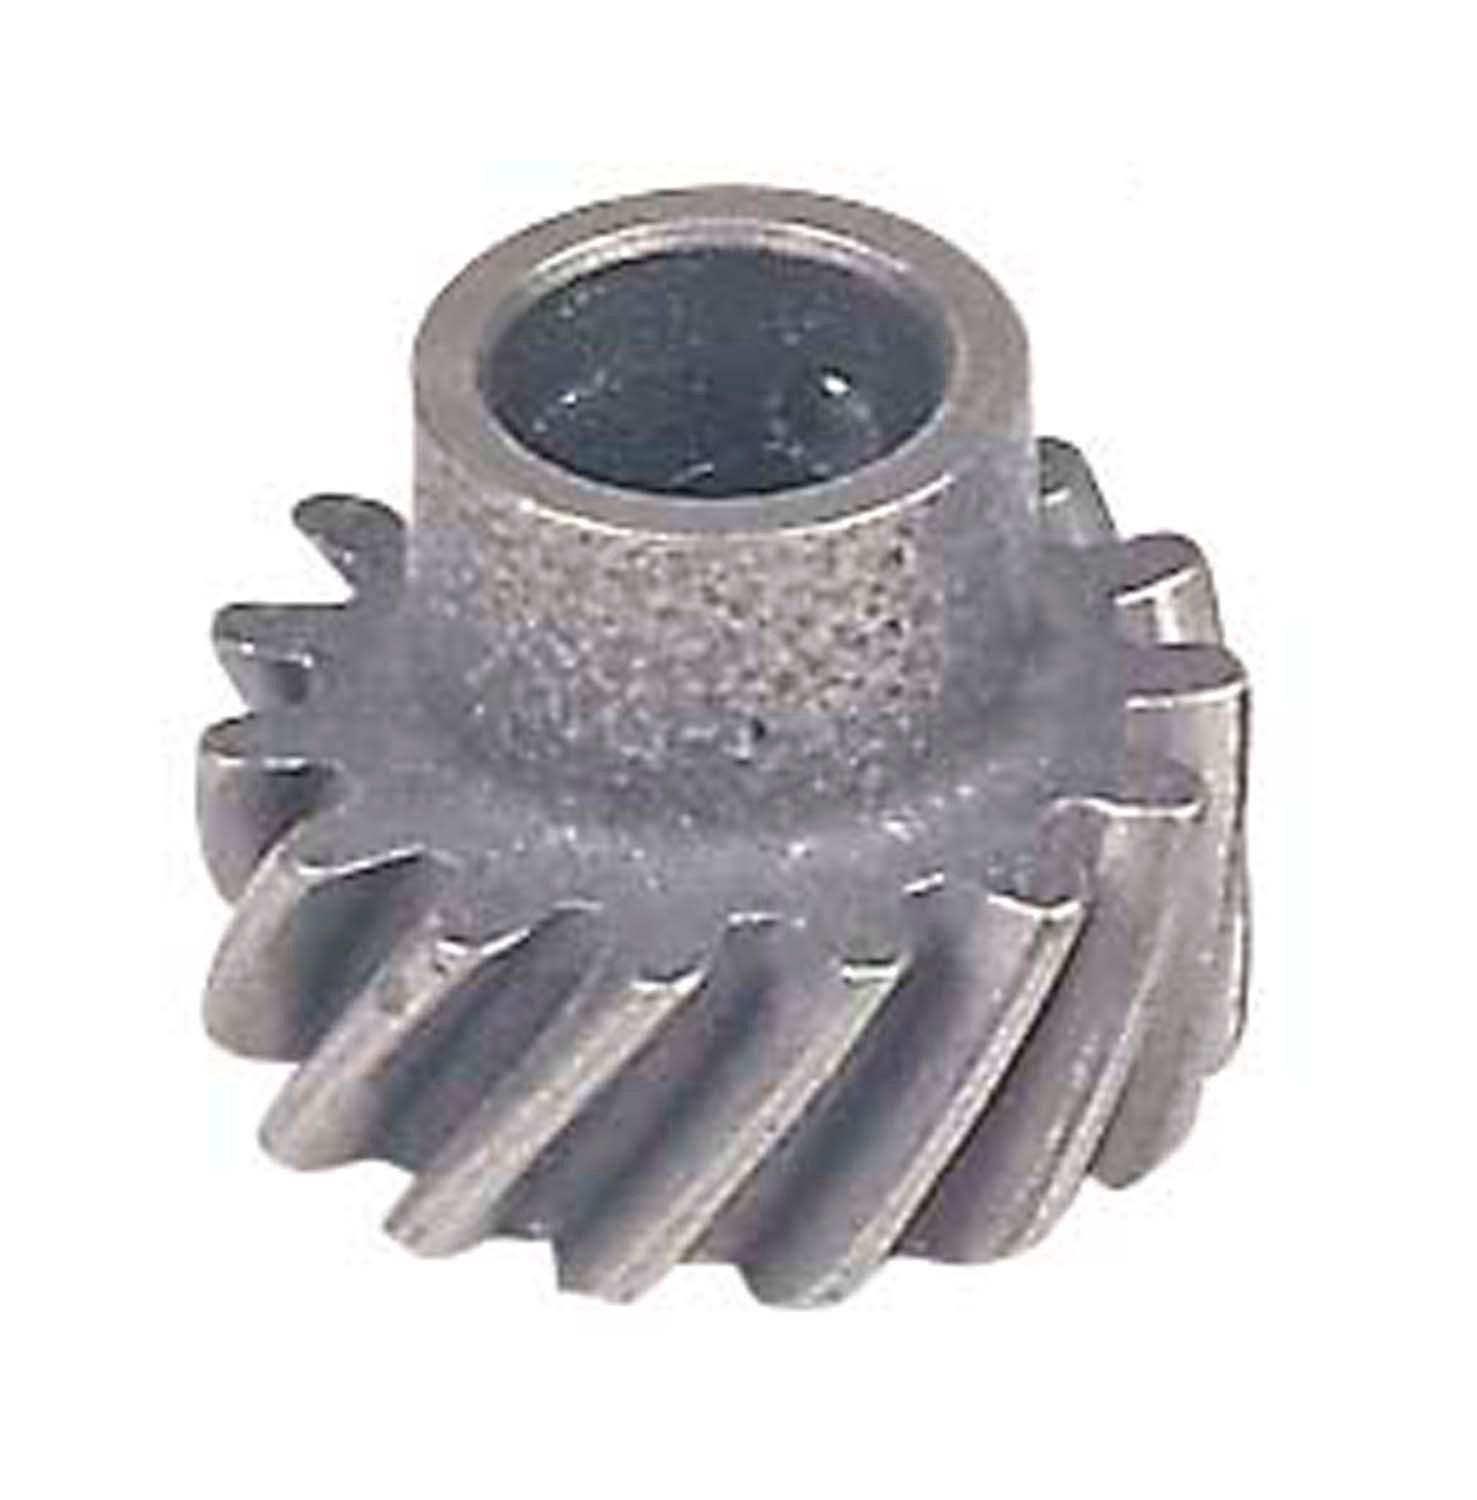 85832 - Ford Iron Distributor Gear Image